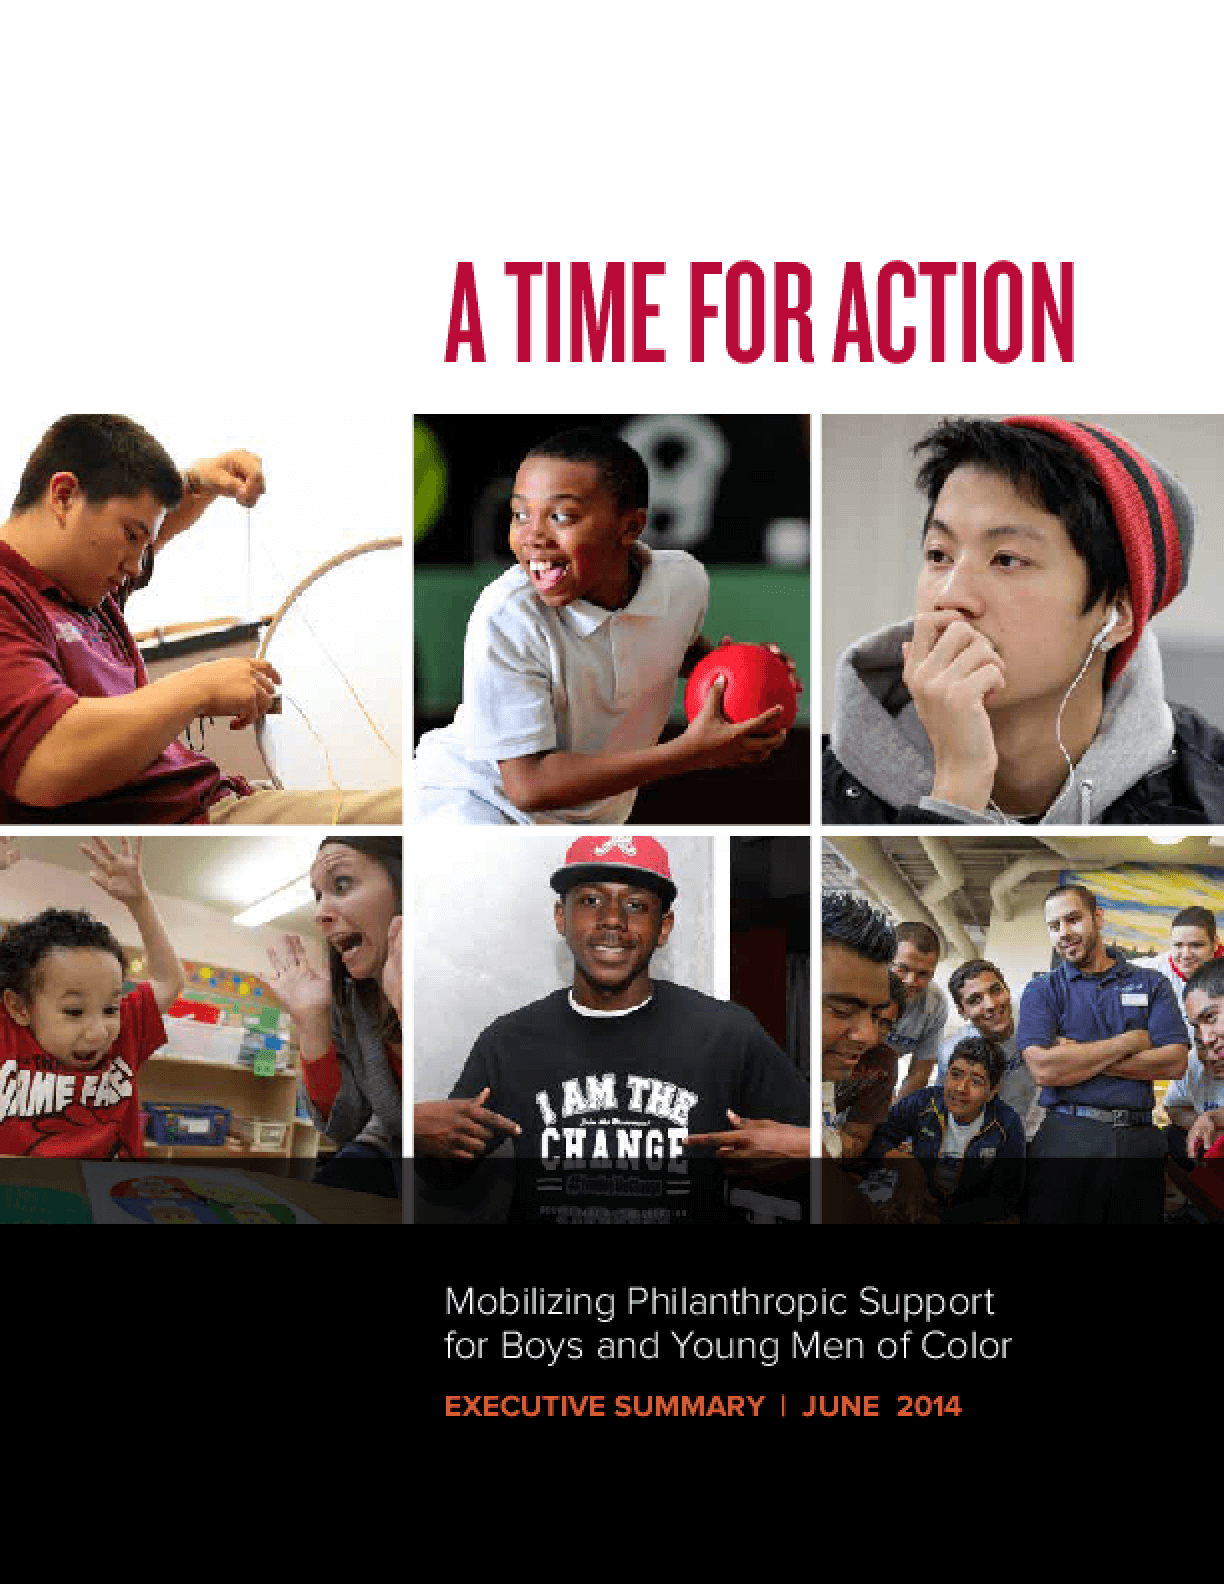 A Time for Action: Mobilizing Philanthropic Support for Boys and Young Men of Color